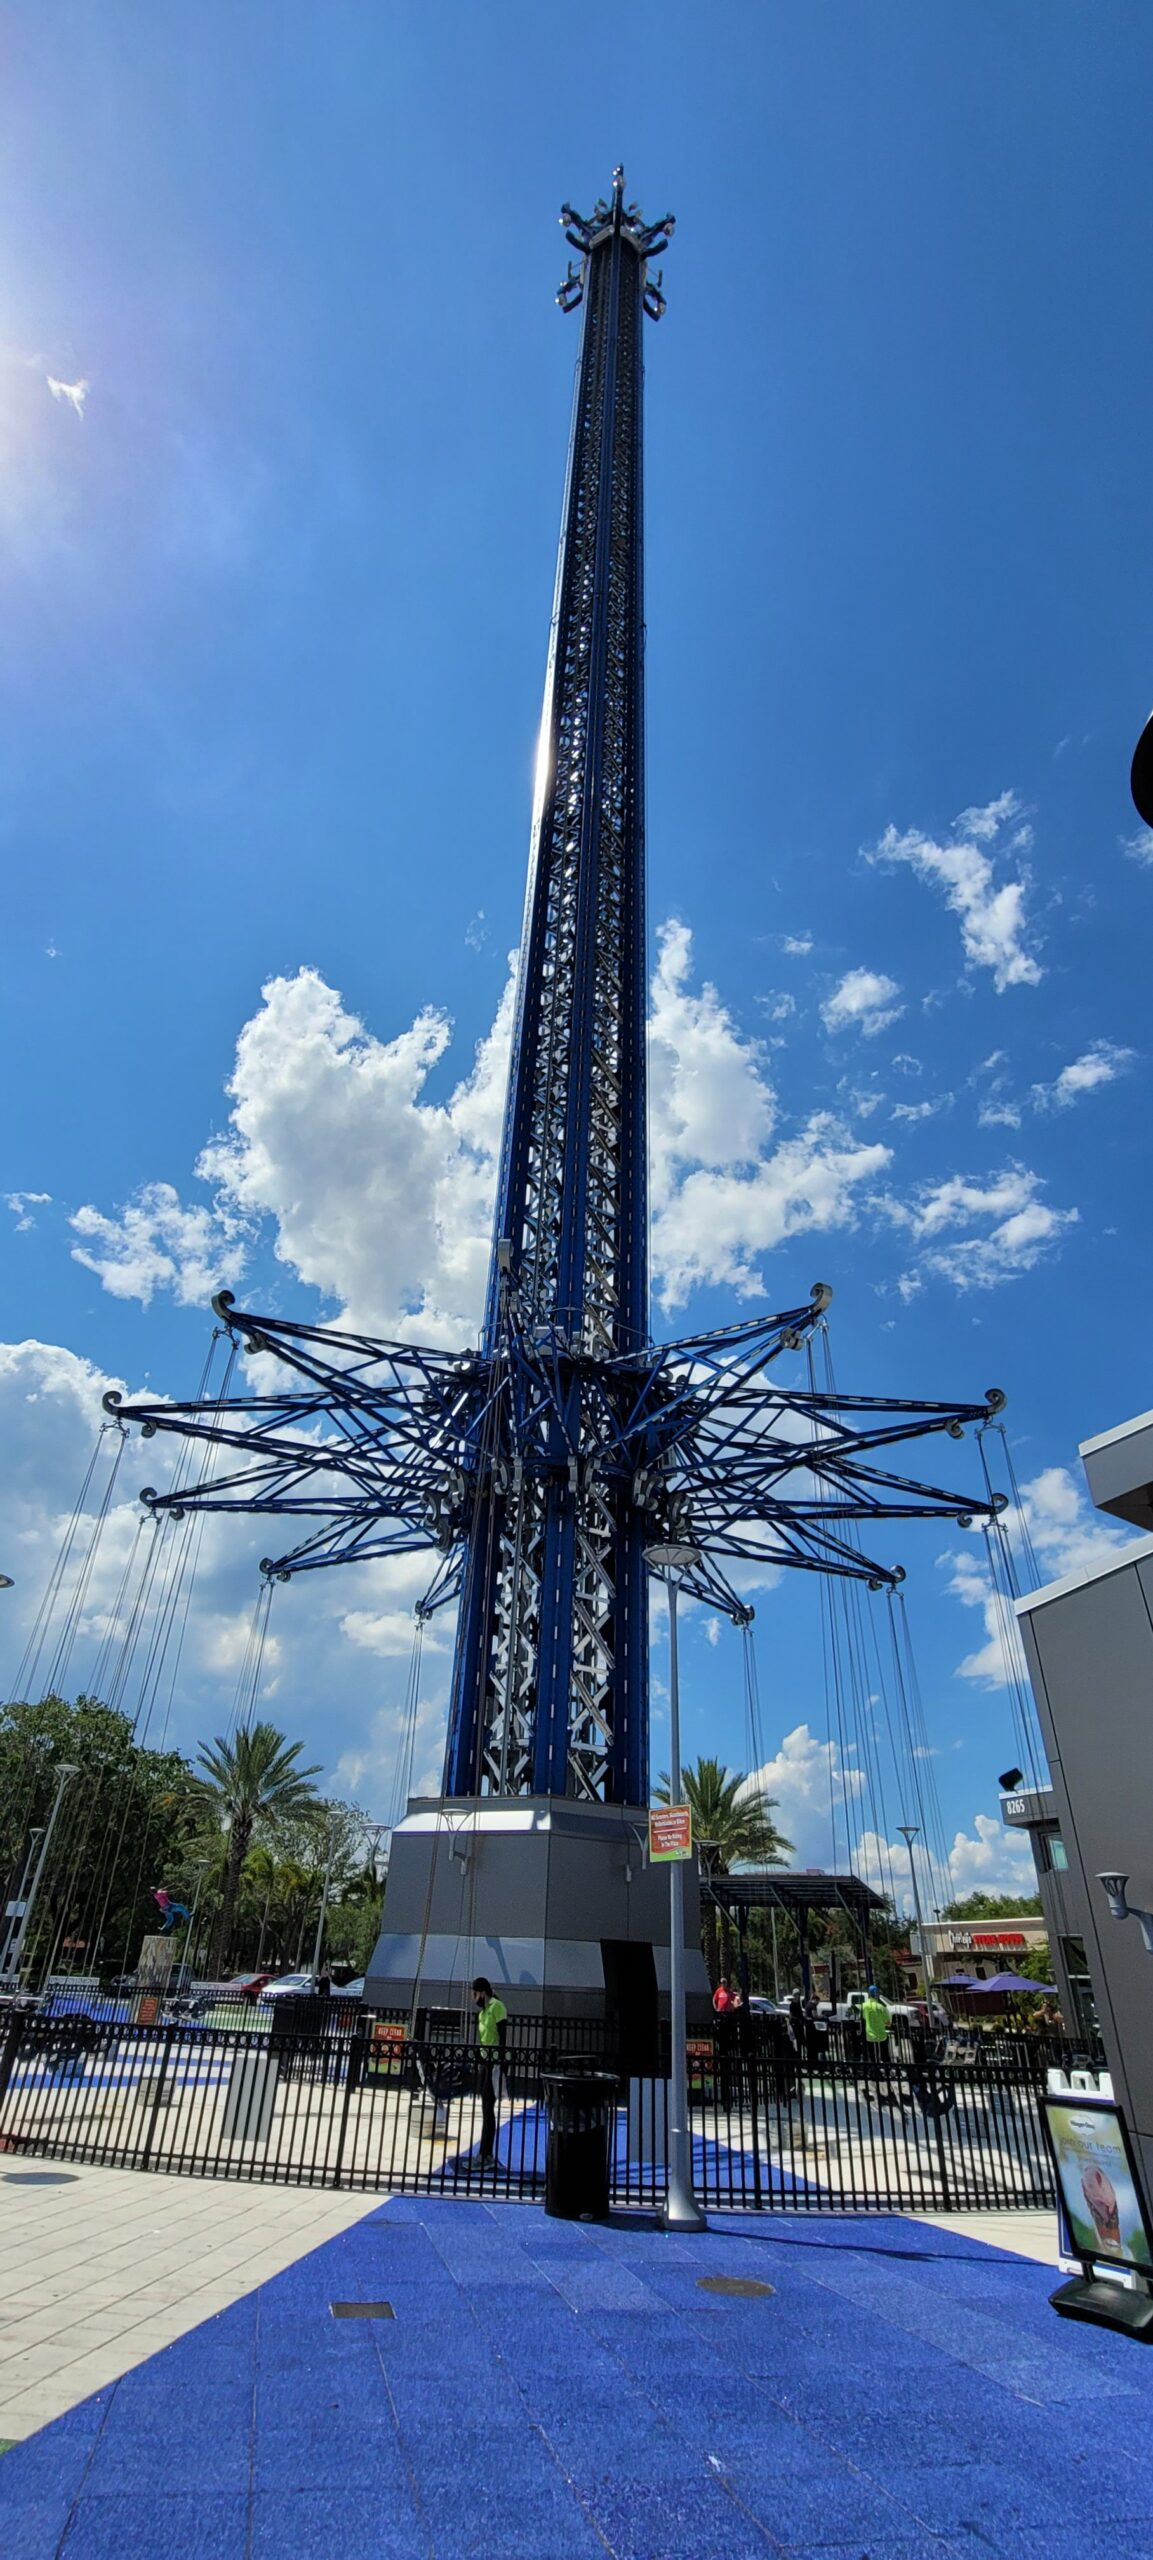 Have a family fun day at ICON Park in Orlando 83